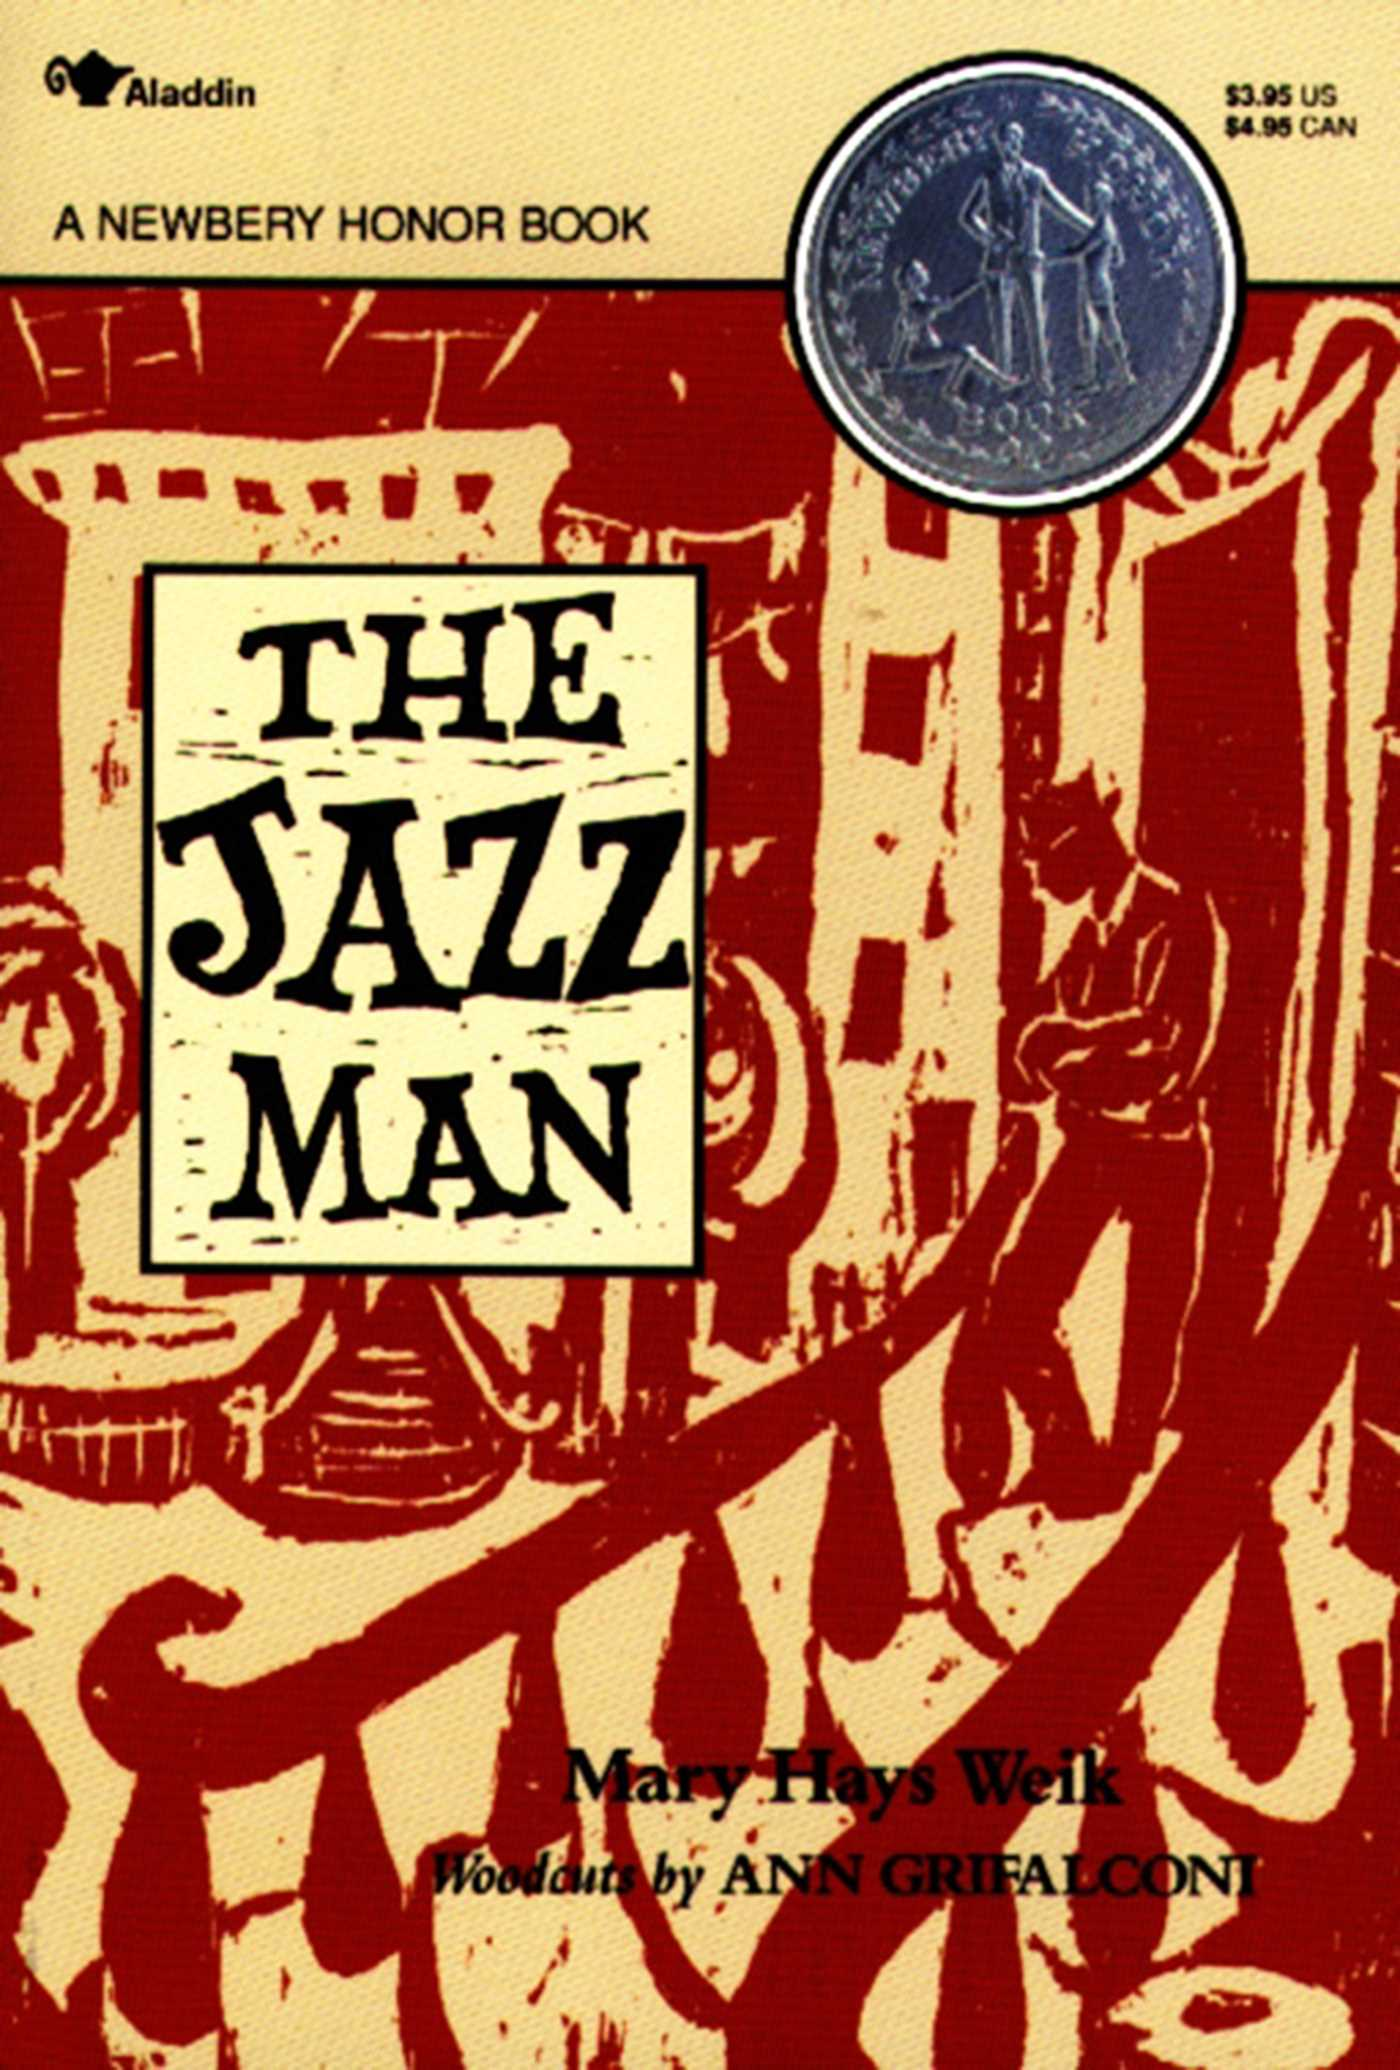 The jazz man 9780689717673 hr